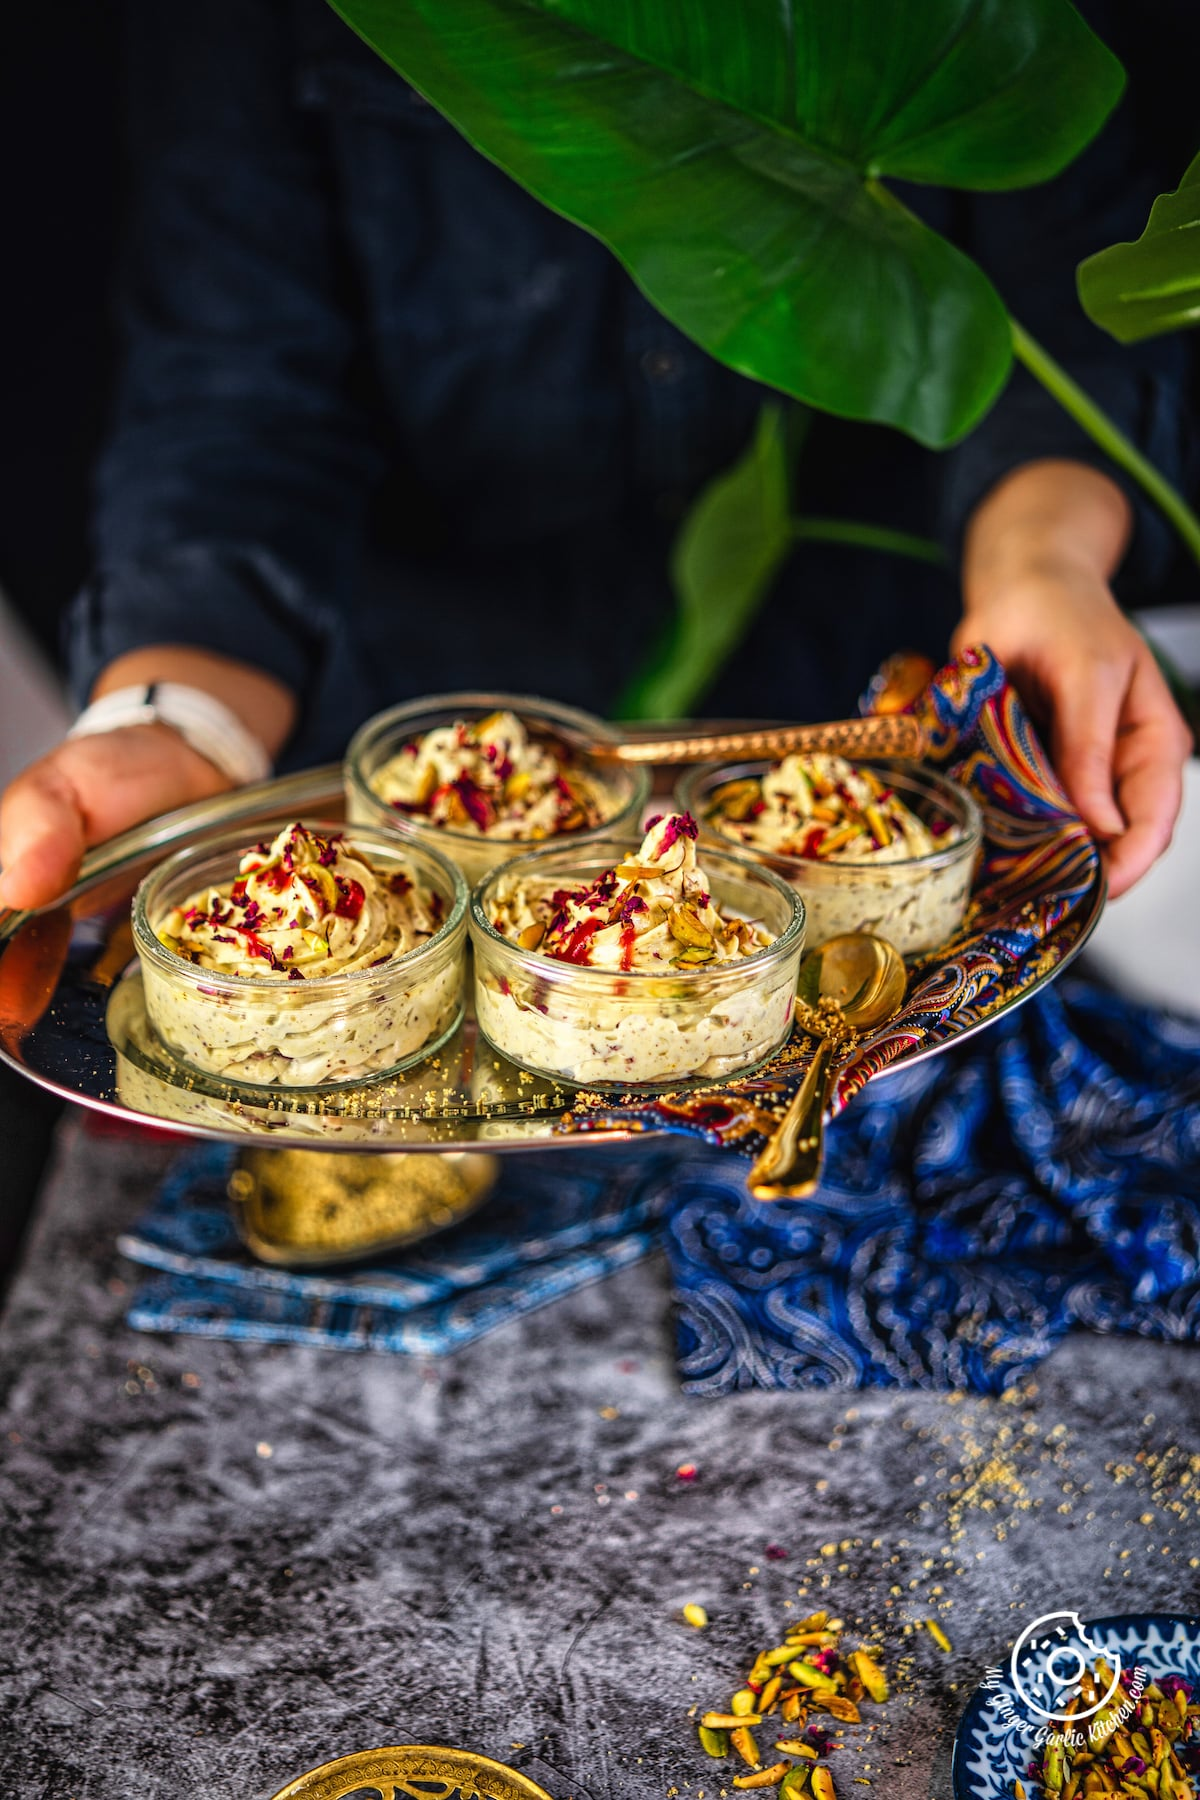 a female holding a metal tray with 4 transparent thandai shrikhand bowls